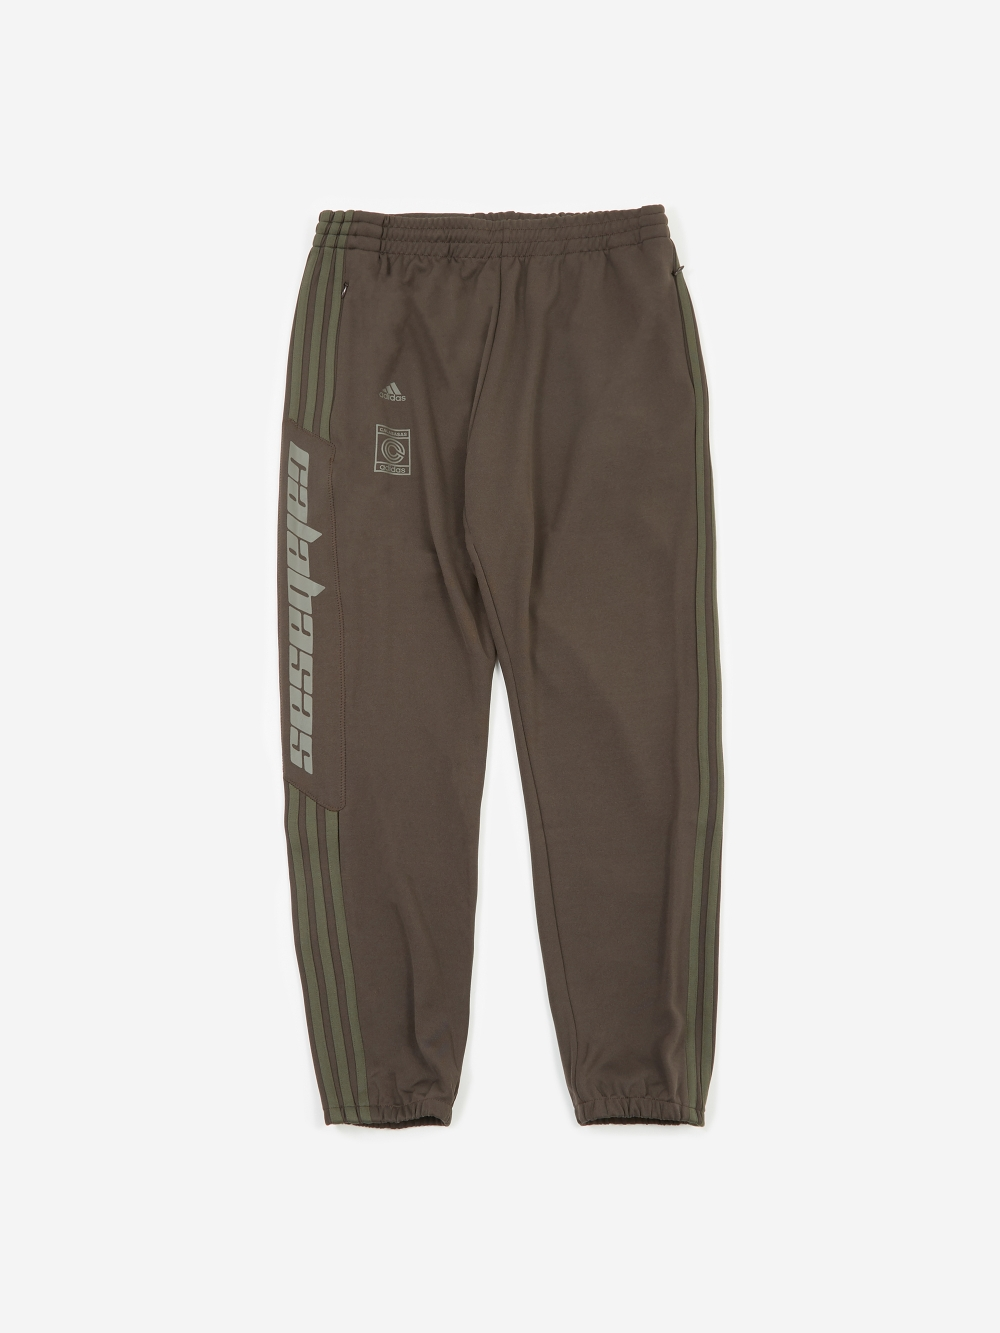 dd046d2e79f38 Yeezy - Yeezy Calabasas Track Pant - Umber (Image 1)